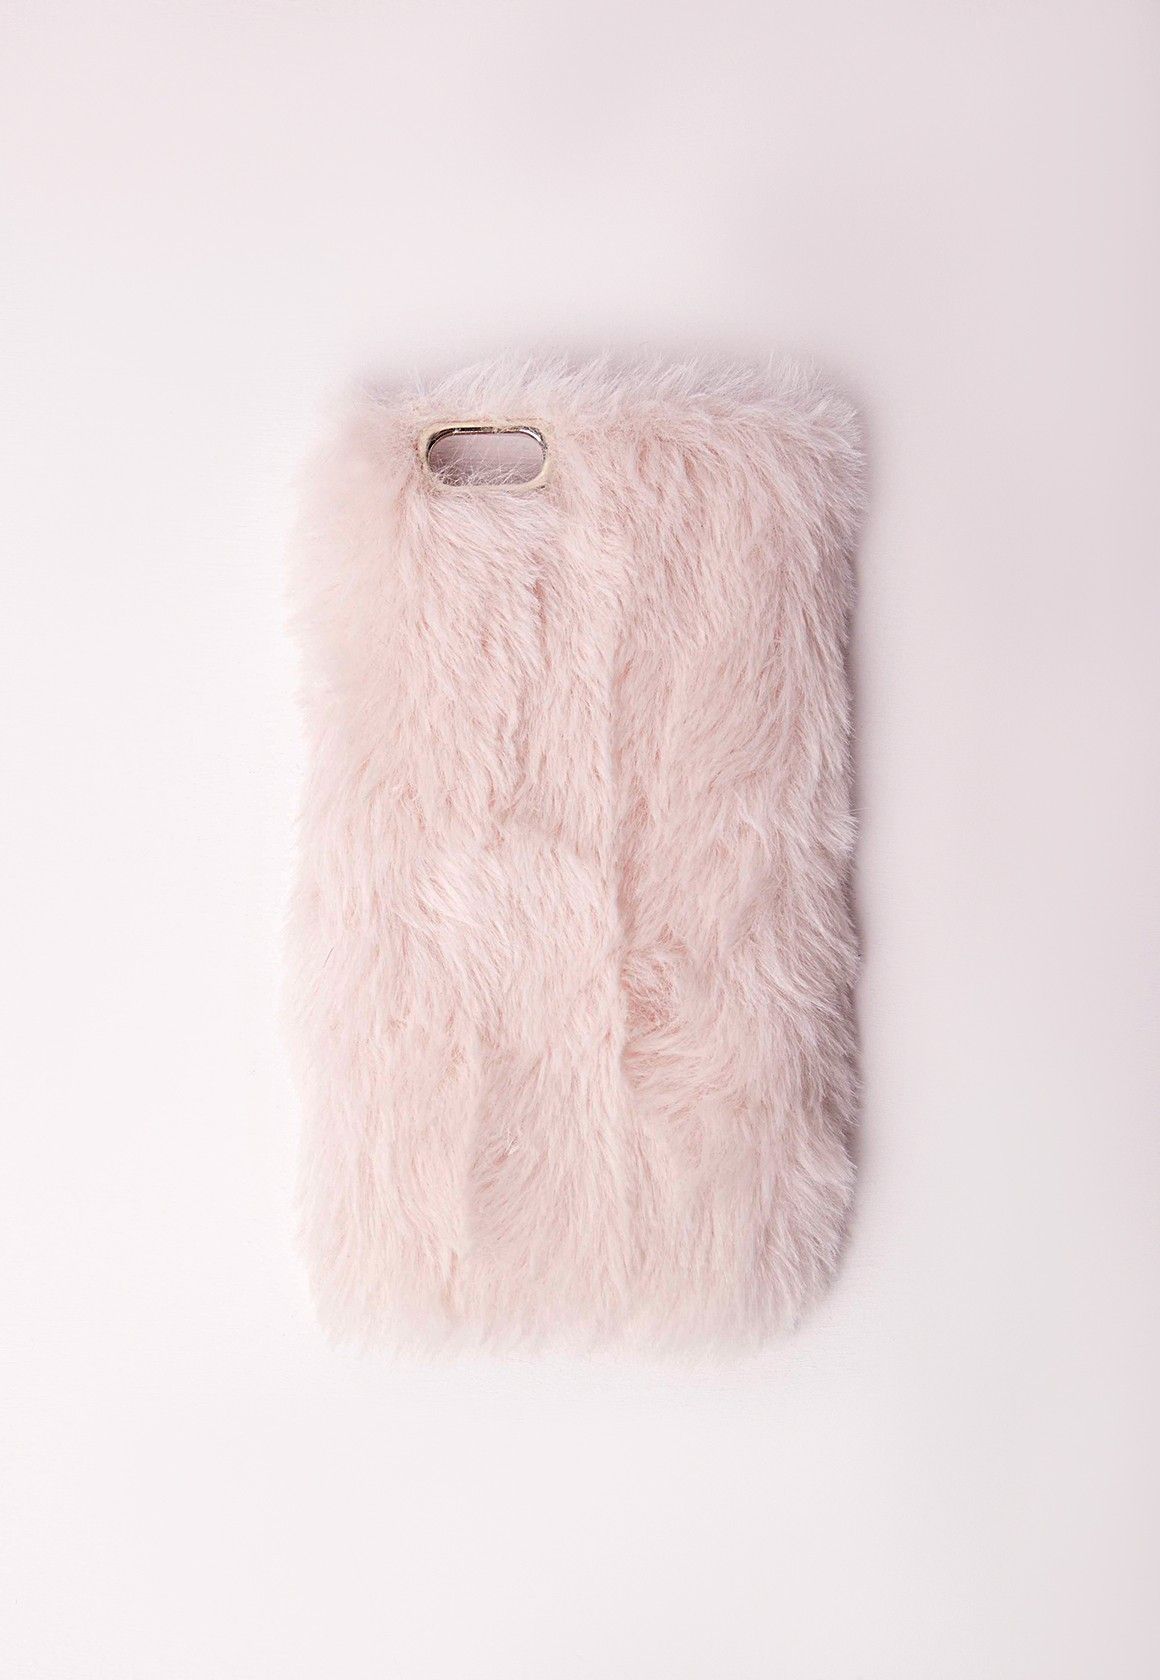 official photos 5e7c6 8d6b4 Fluffy iPhone 6 Case Pink - Accessories - Phone Cases - Missguided ...